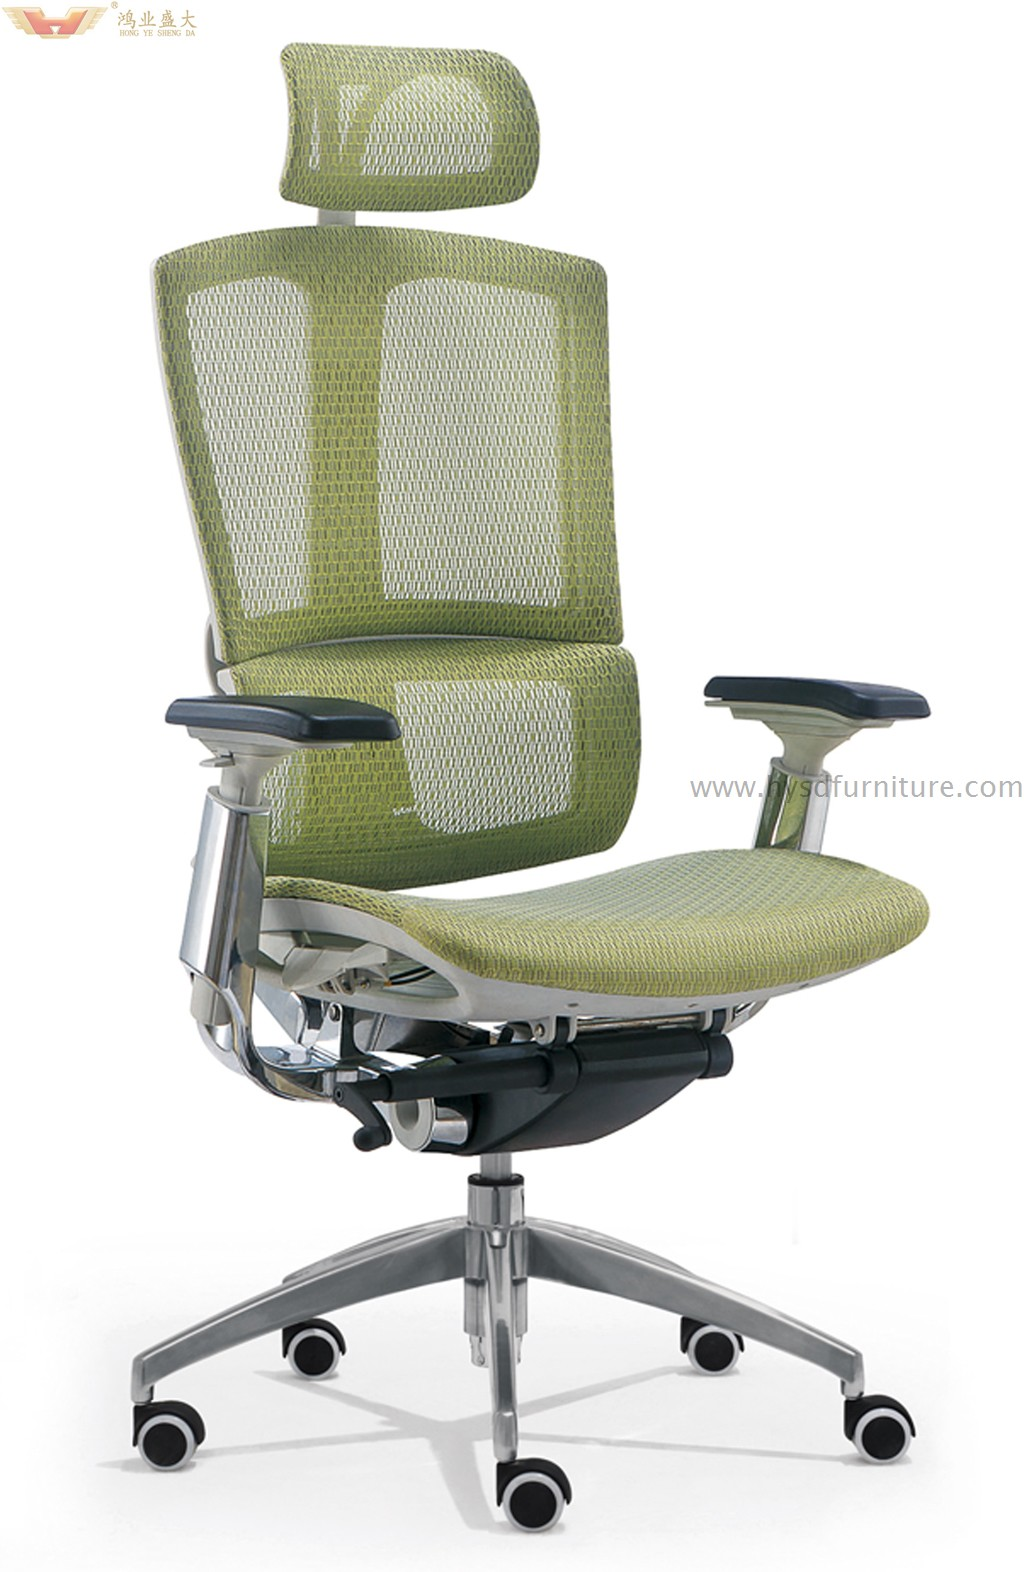 executive office chairs specifications tommy bahama chair cooler backpack high quality mesh hy 99a hongye shengda modern with headrest and armrest